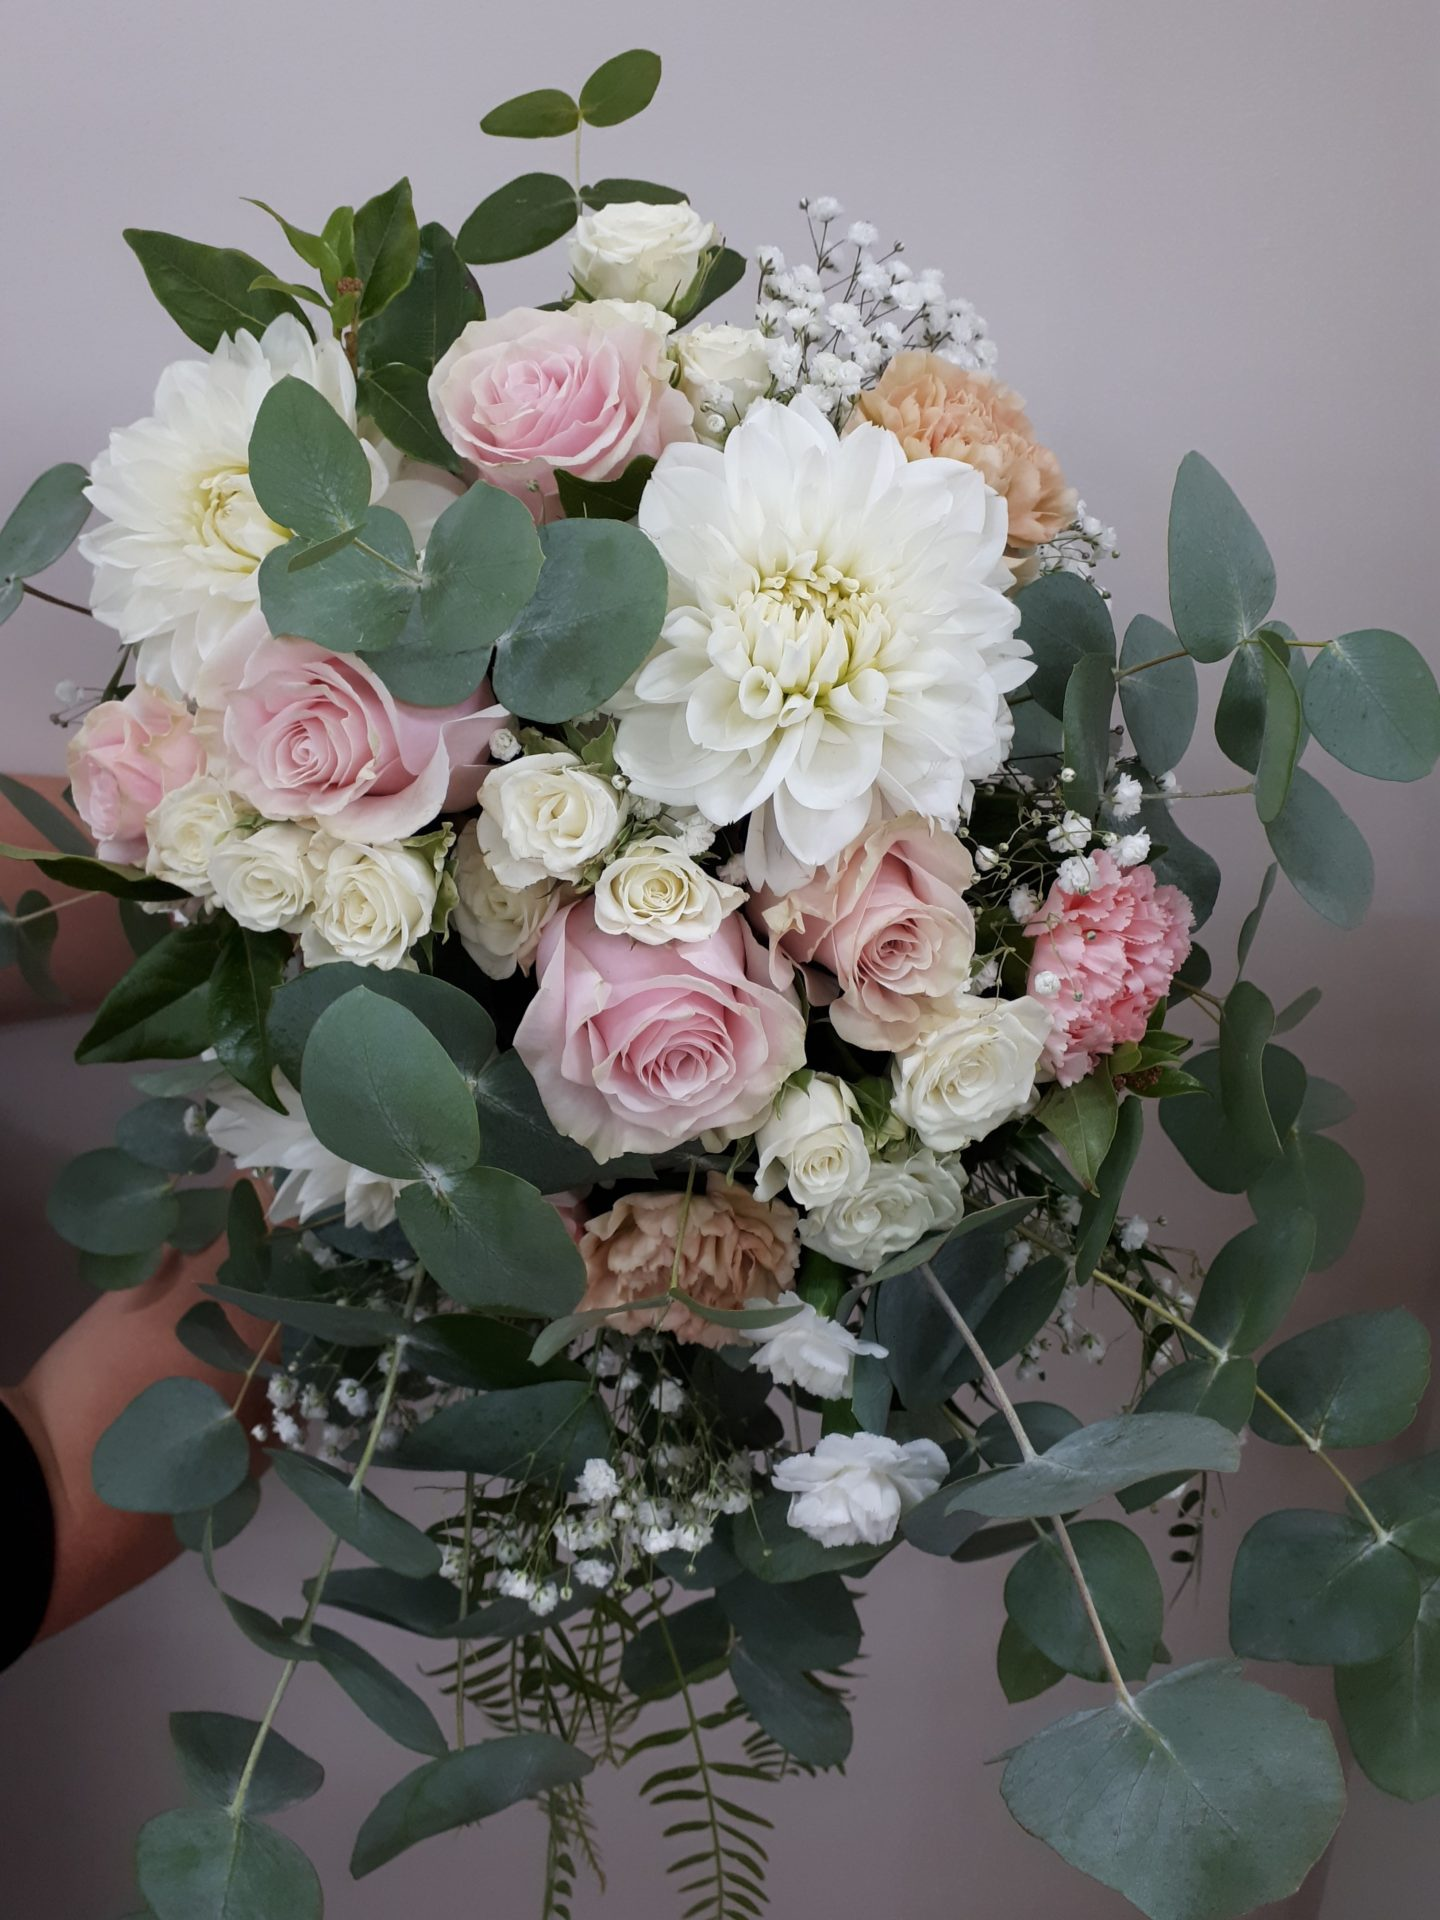 Cascading bouquet Dahila, roses, carnations with blue gum